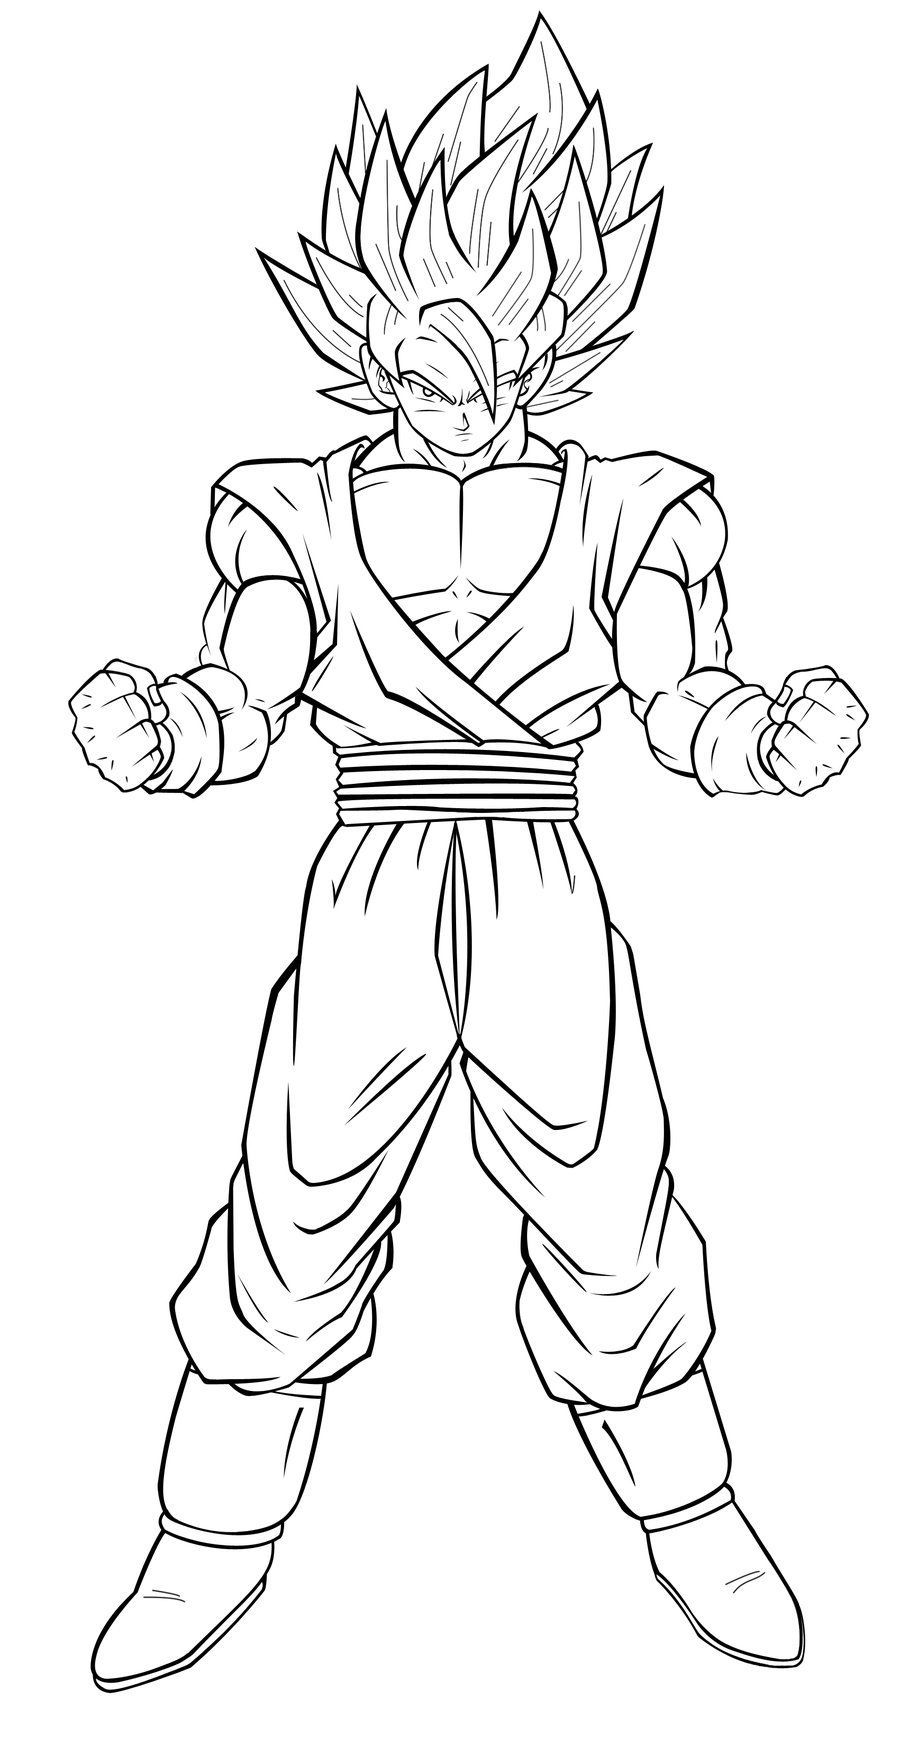 Dragon Ball Z Coloring Pages Goku Dragon Ball Z Coloring Pages Dragon Coloring Page Super Coloring Pages Dragon Ball Image